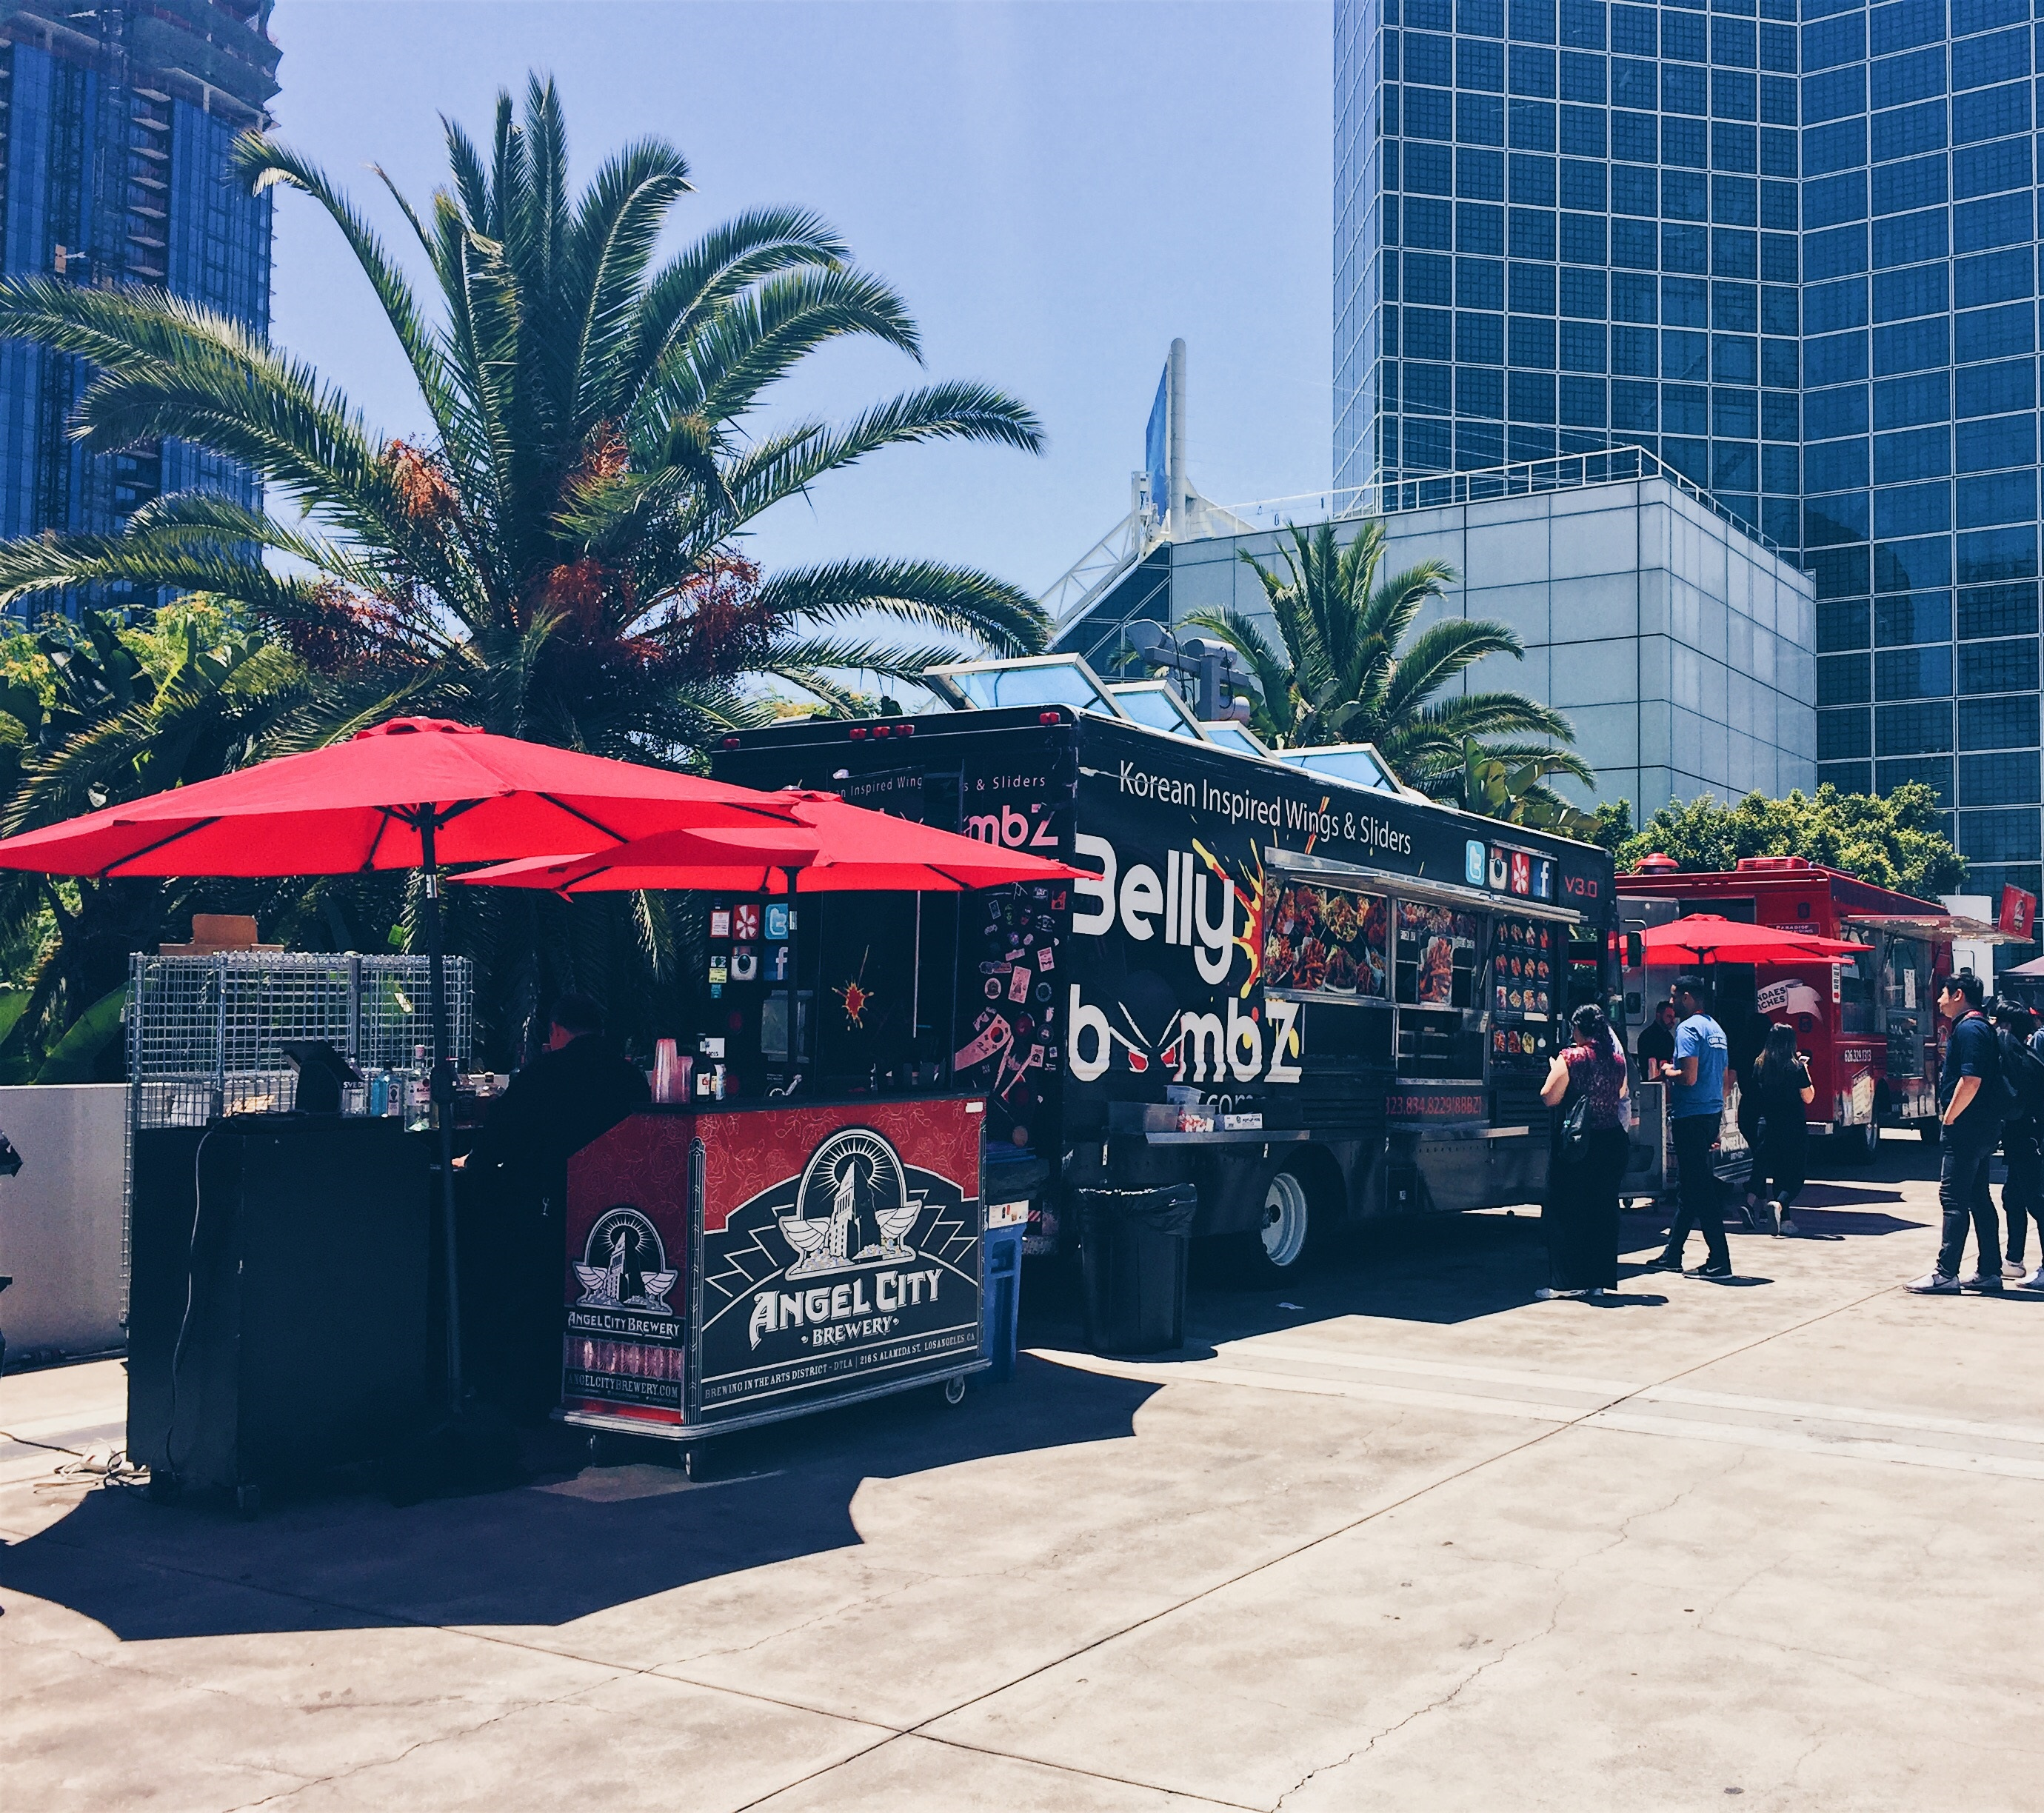 Los Angeles, USA - Middle Feast Food Truck - Food Trucks at Los Angeles Convention Centre - helloteri